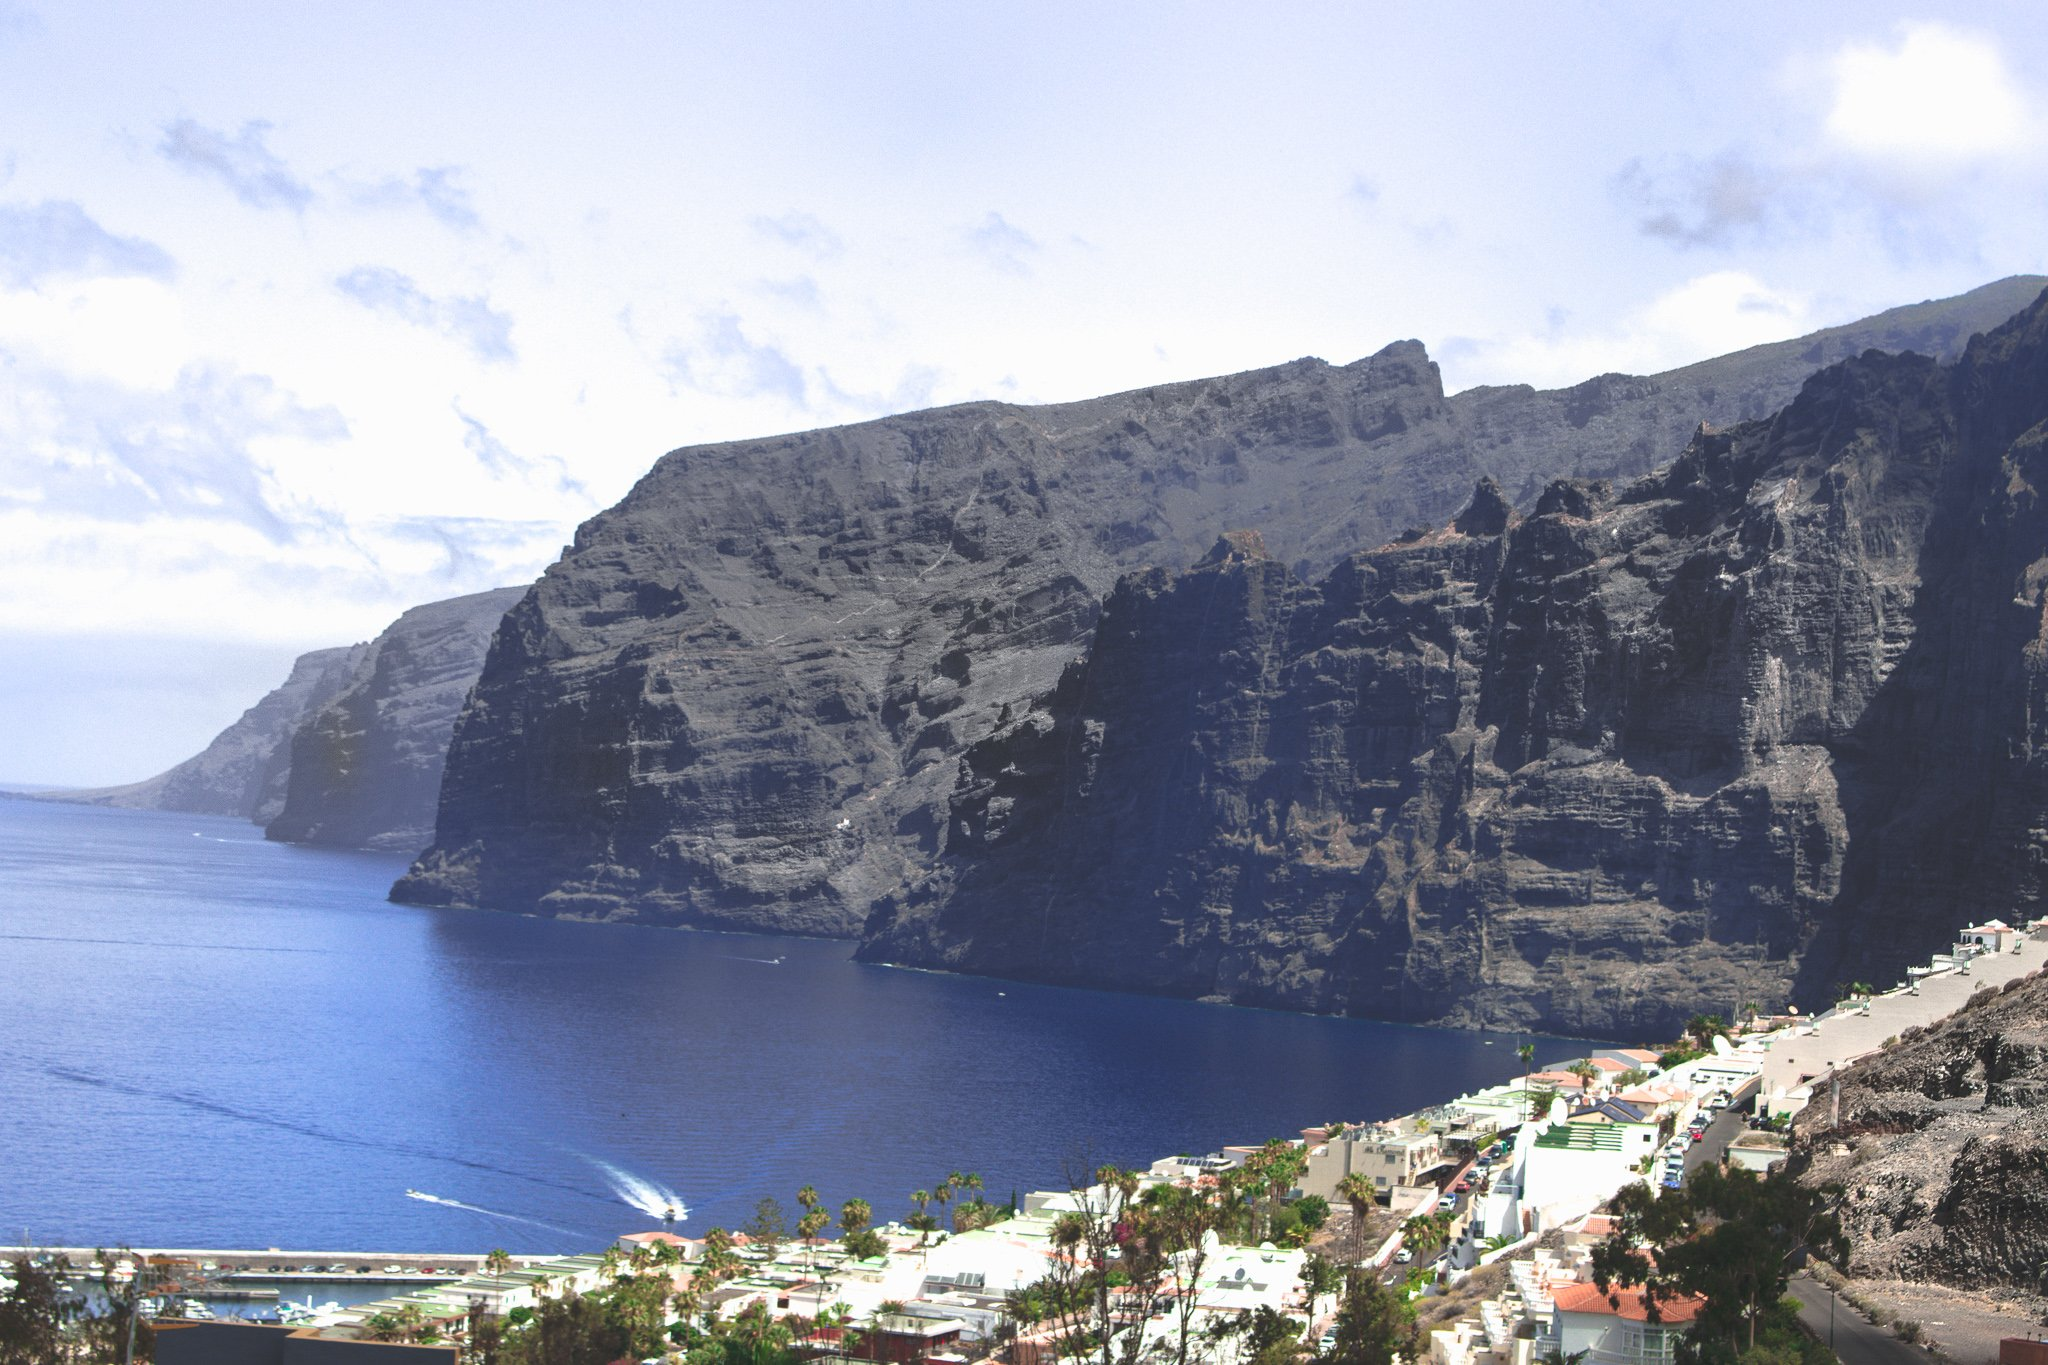 """This year #Tenerife is definitely my biggest """"#travel surprise"""". Not only did it overcome my expectations in terms of landscapes and activities, but it also turned out to be a great kids-friendly #destination. Visiting Tenerife with a #baby was one of our coolest #family trips so far. #CanaryIslands"""